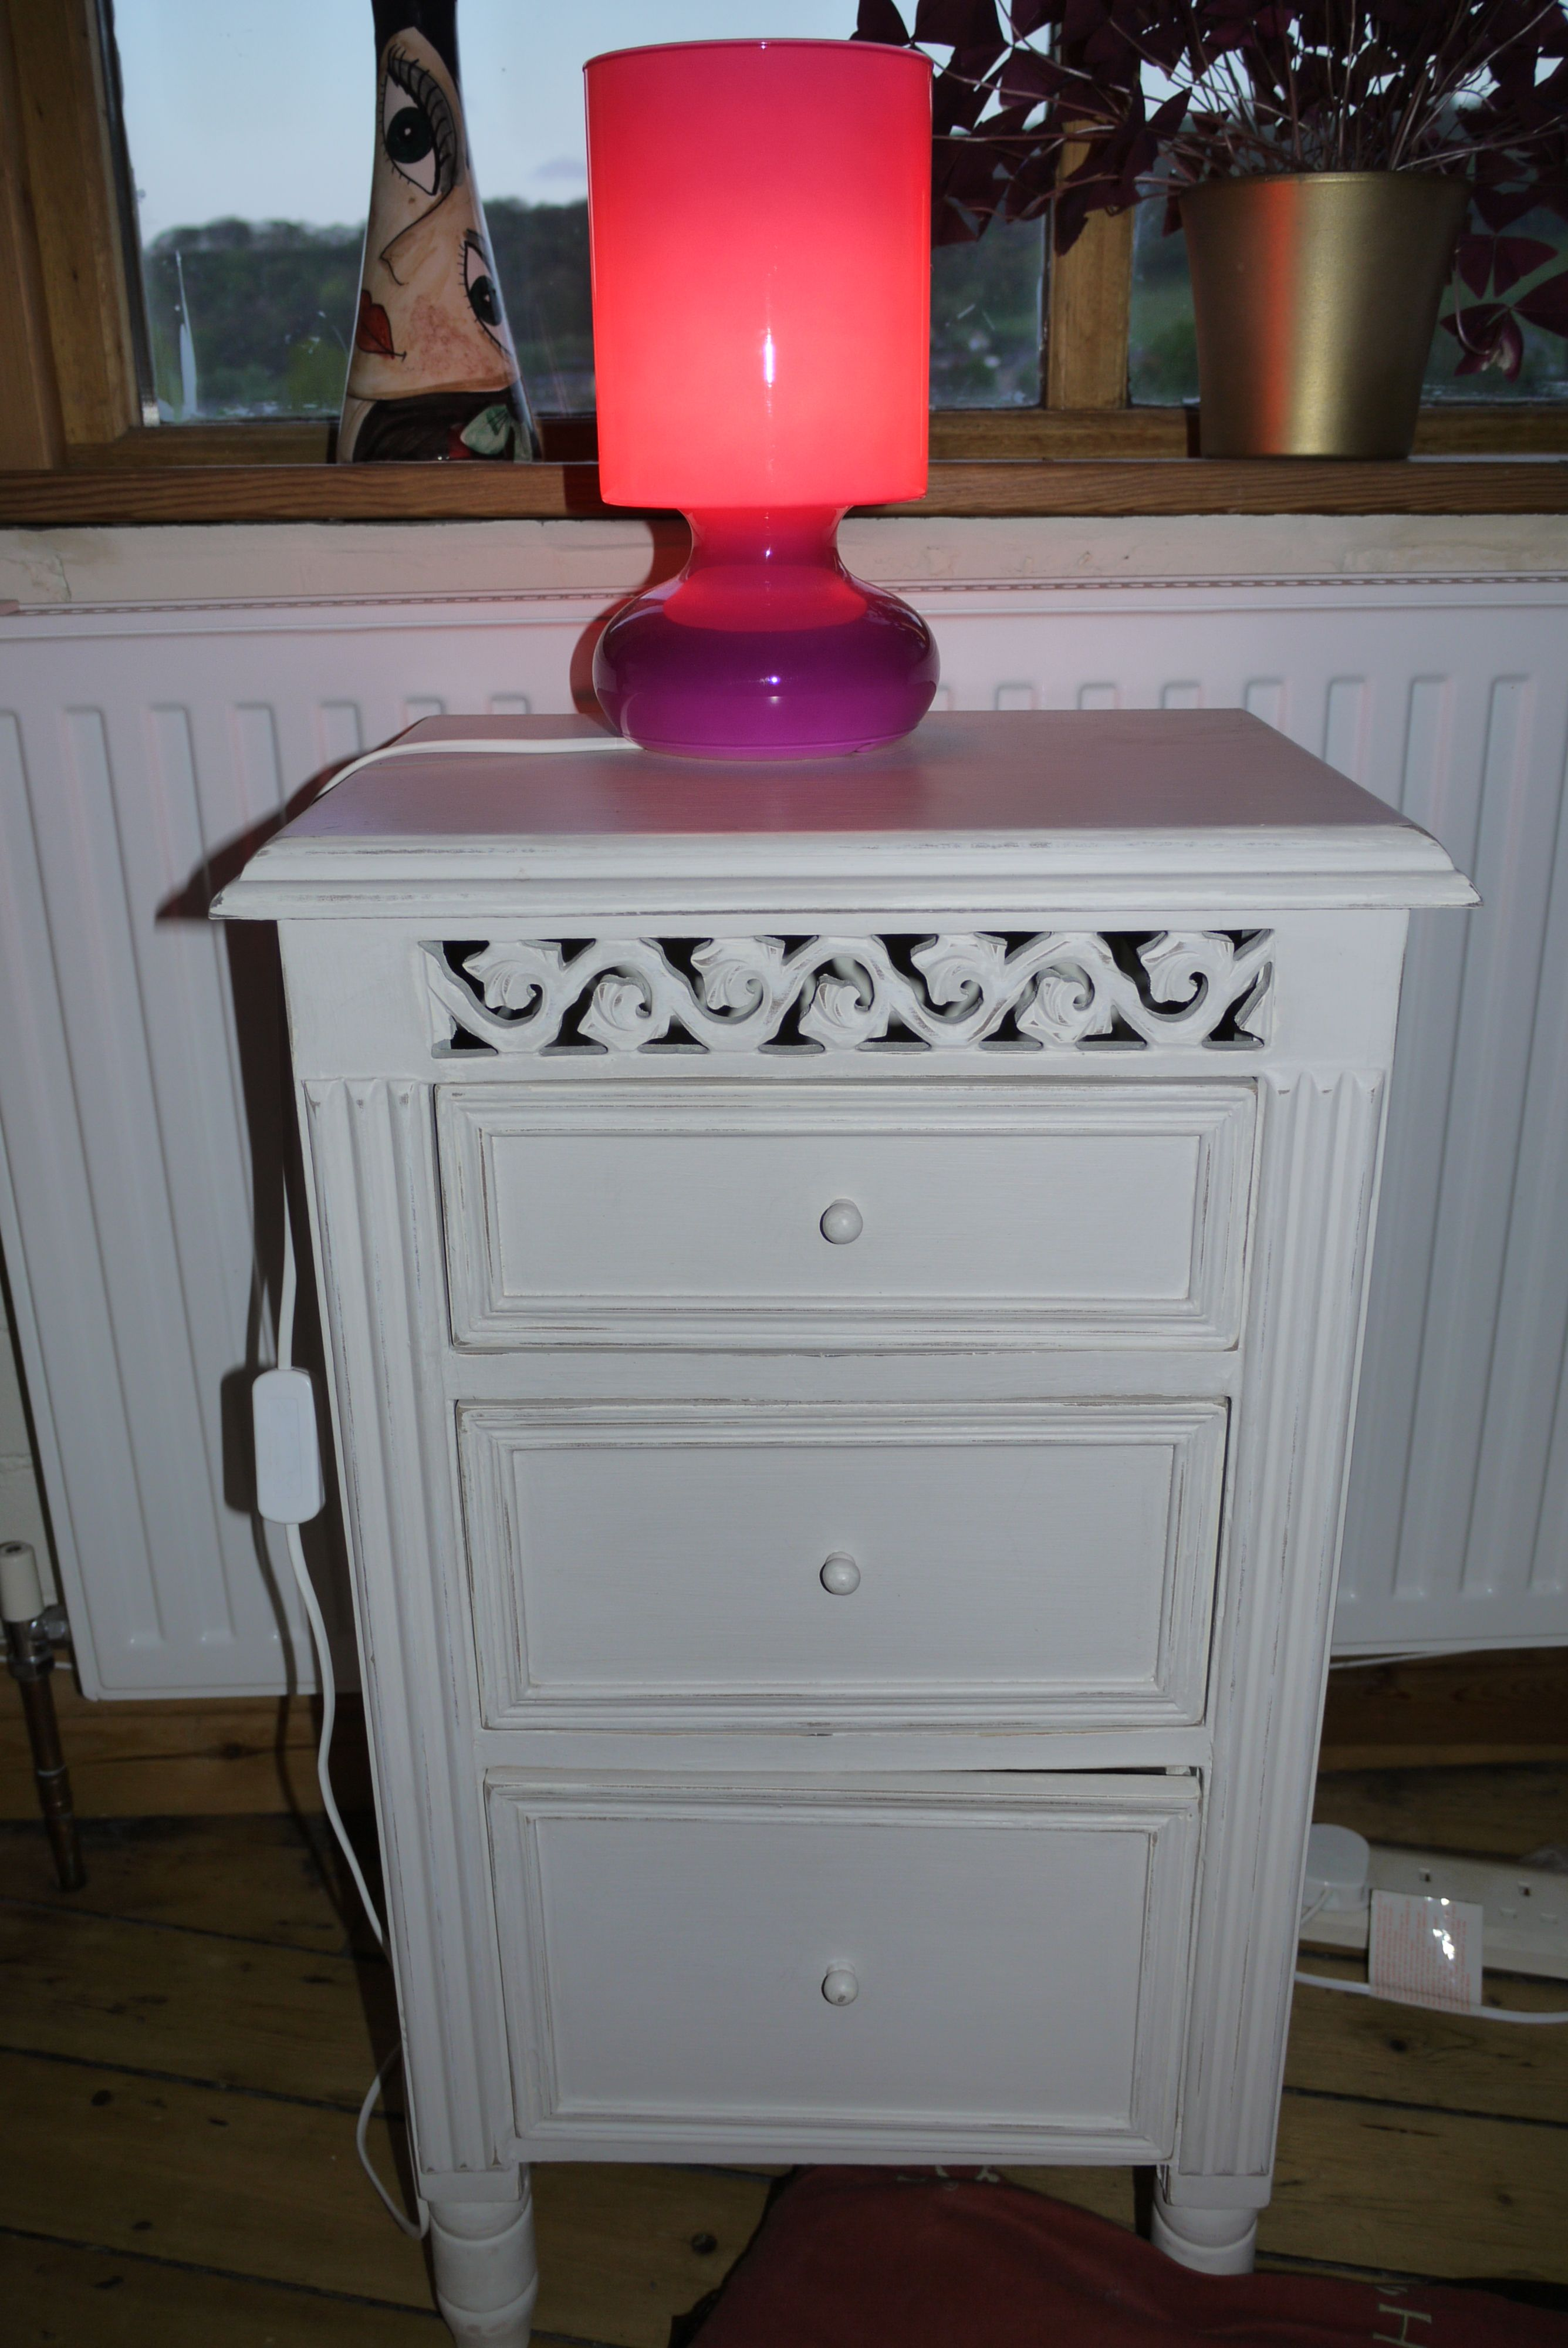 Bedside table and pink Ikea lamp